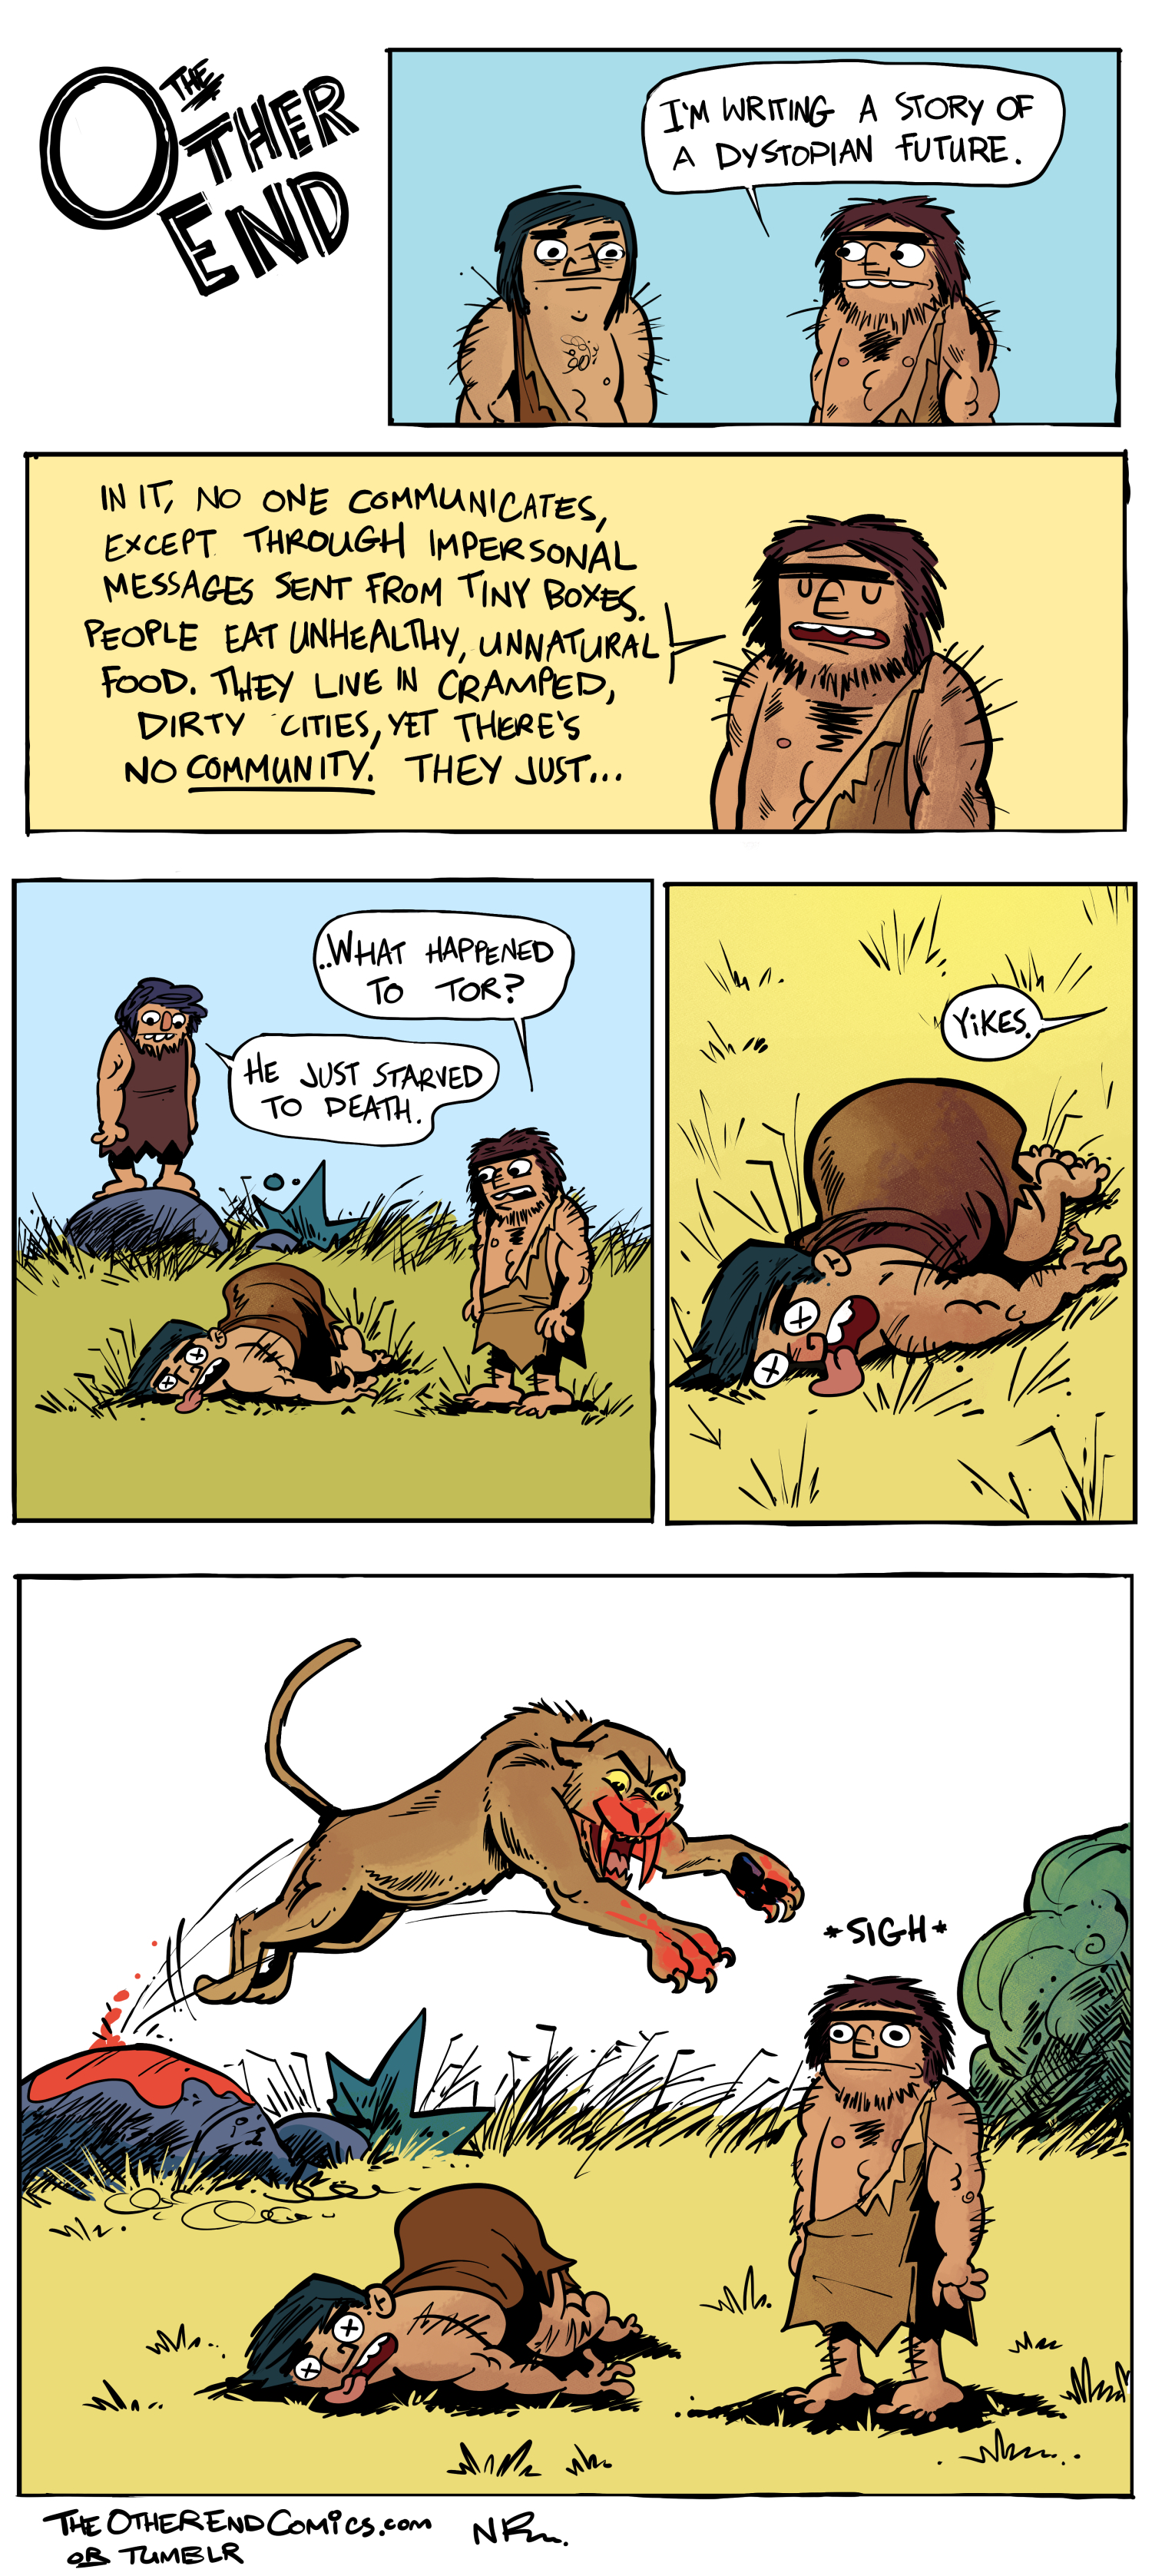 There's no way he wouldn't notice that sabertooth cat eating that other guy. This comic is so fake.